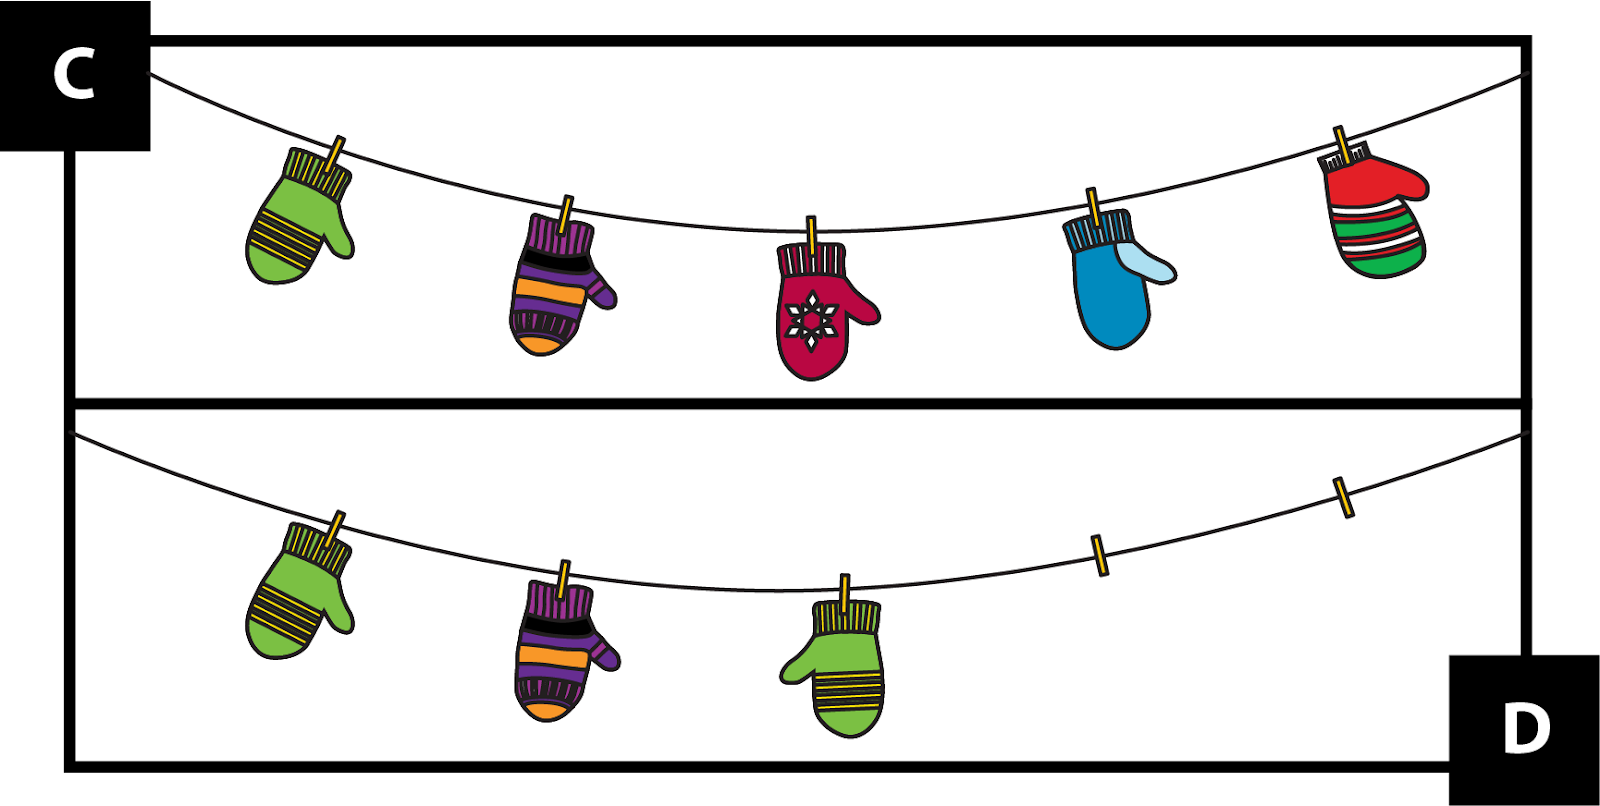 C. shows 5 mittens on a string. 1 is green.  1 is purple with orange stripes. 1 is red. 1 is blue. 1 is red with green and white stripes. D. shows 3 mittens on a string. 2 are green. 1 is purple with orange stripes. The colors go green, purple, green. The green mittens look like a pair.